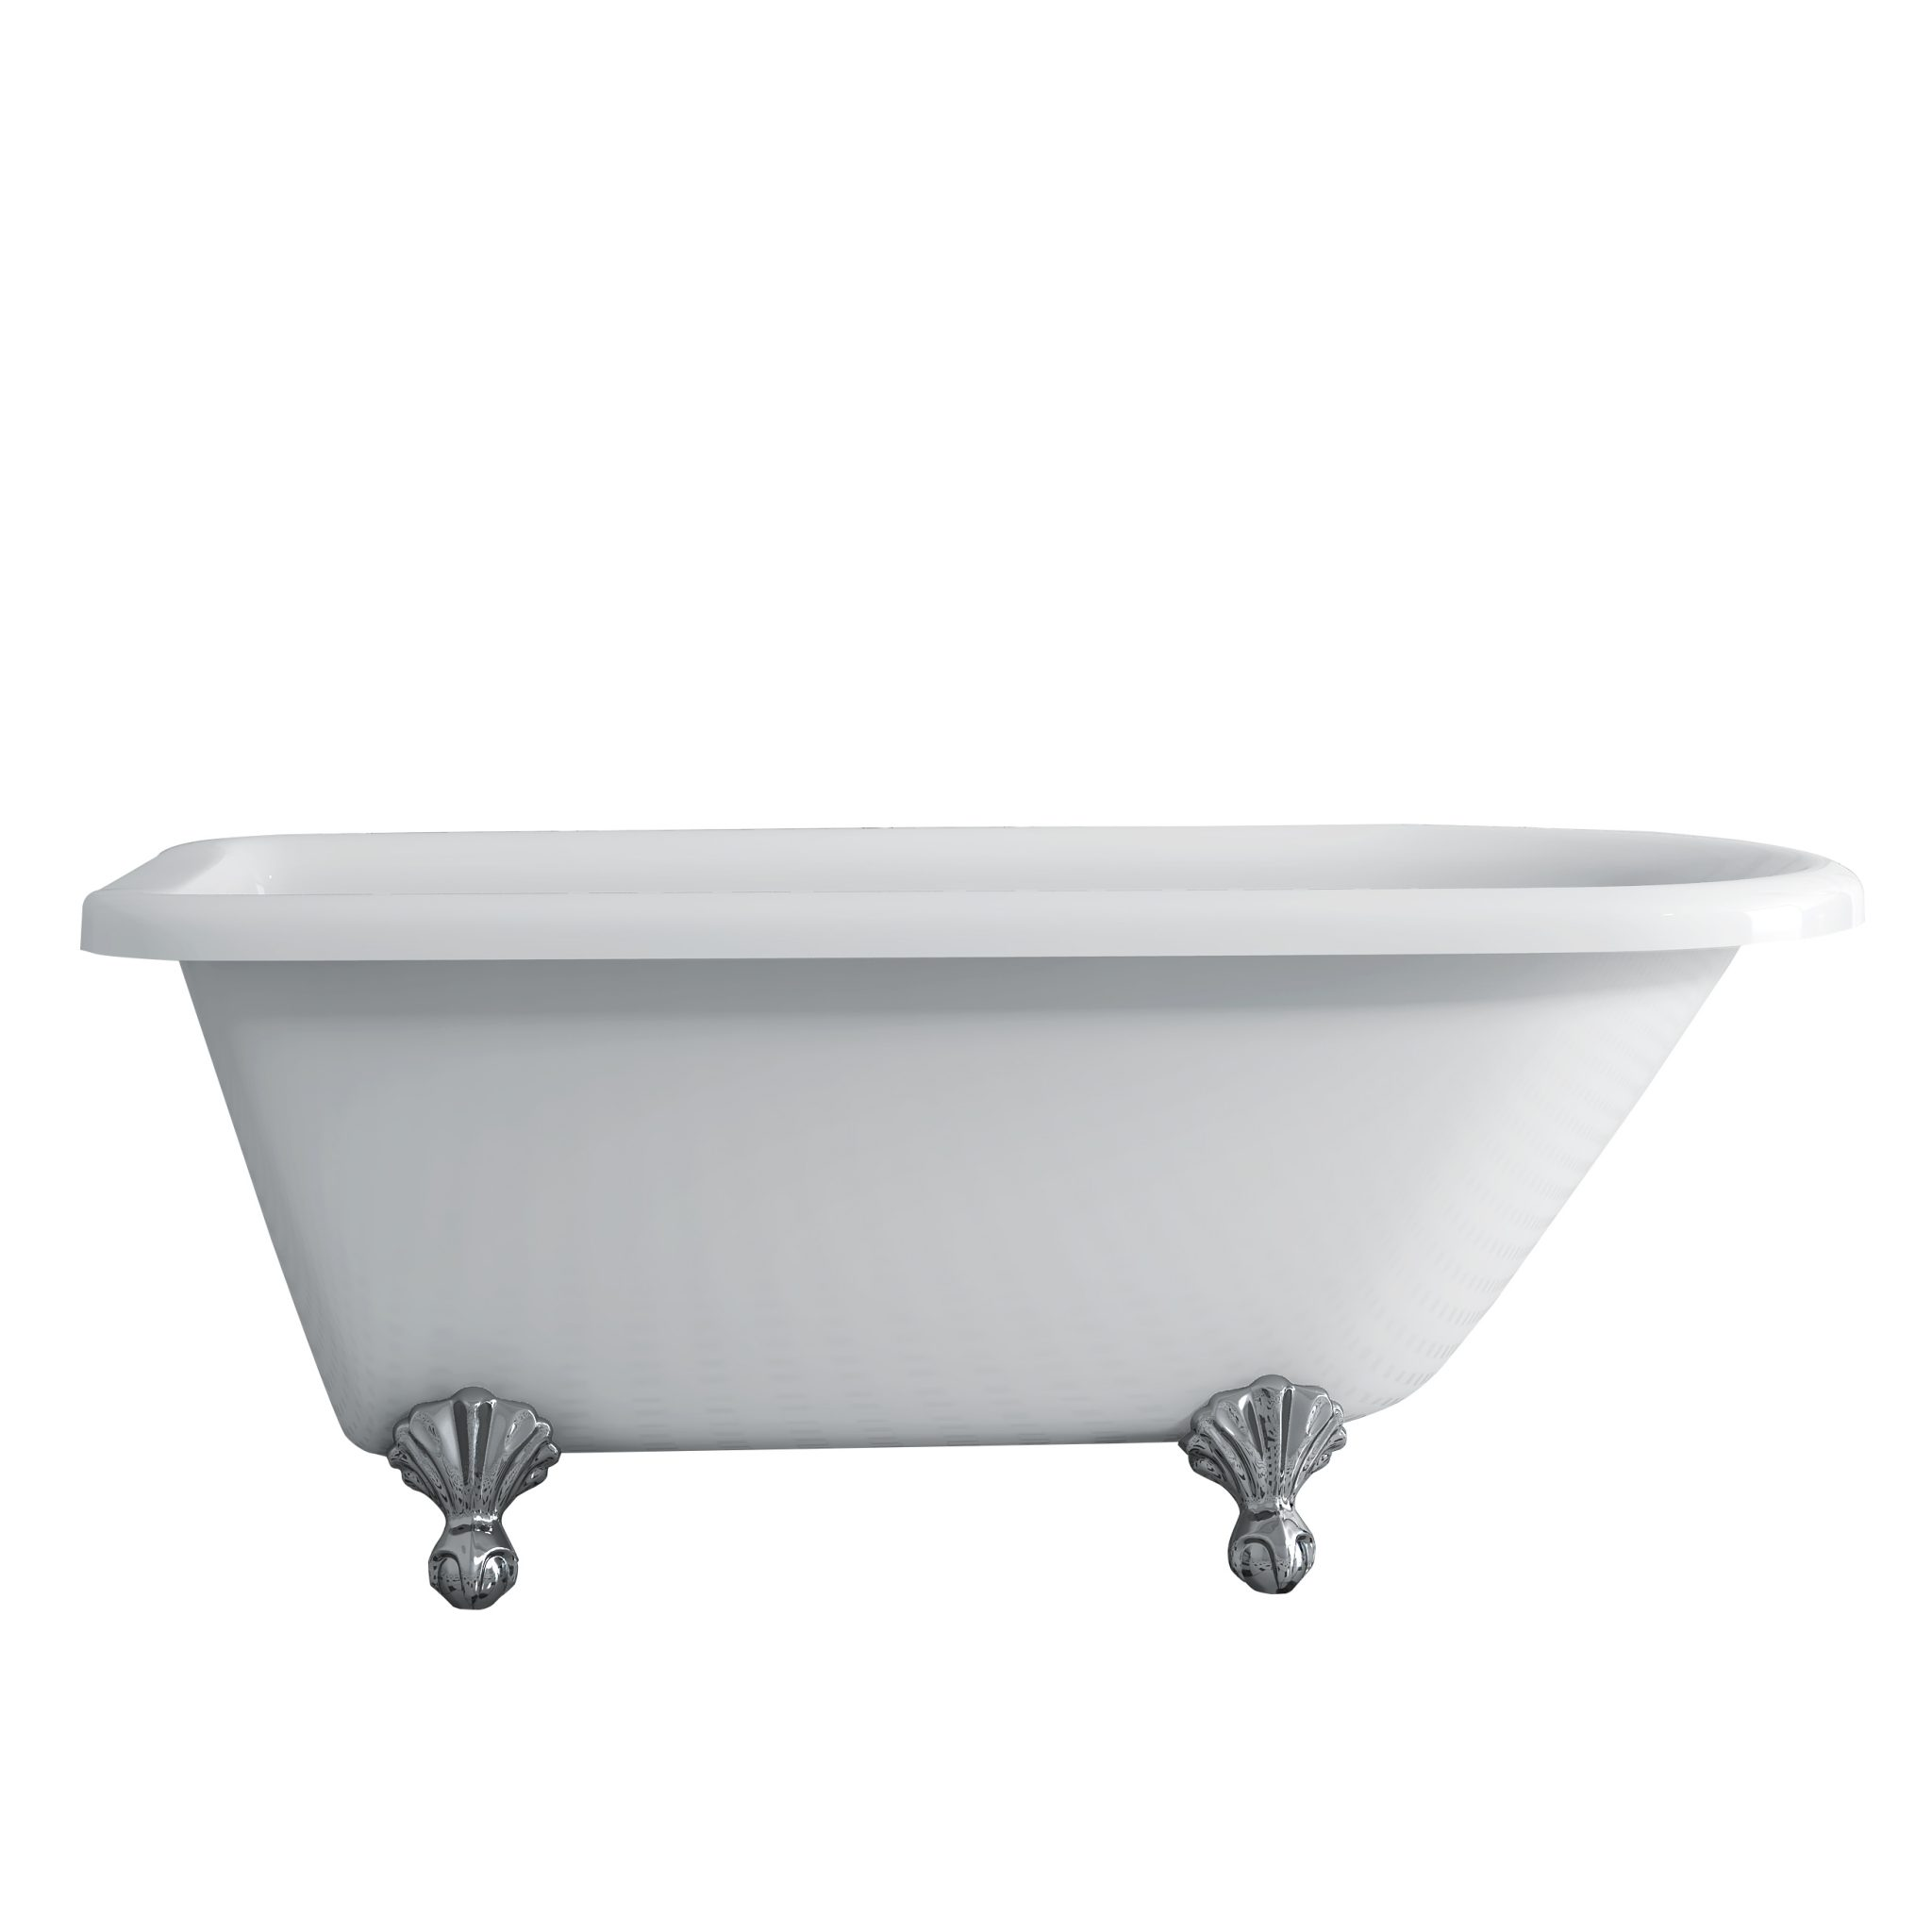 with supply maax hr tenderness co rectangular plastics consolidated bathtub aker product armrest